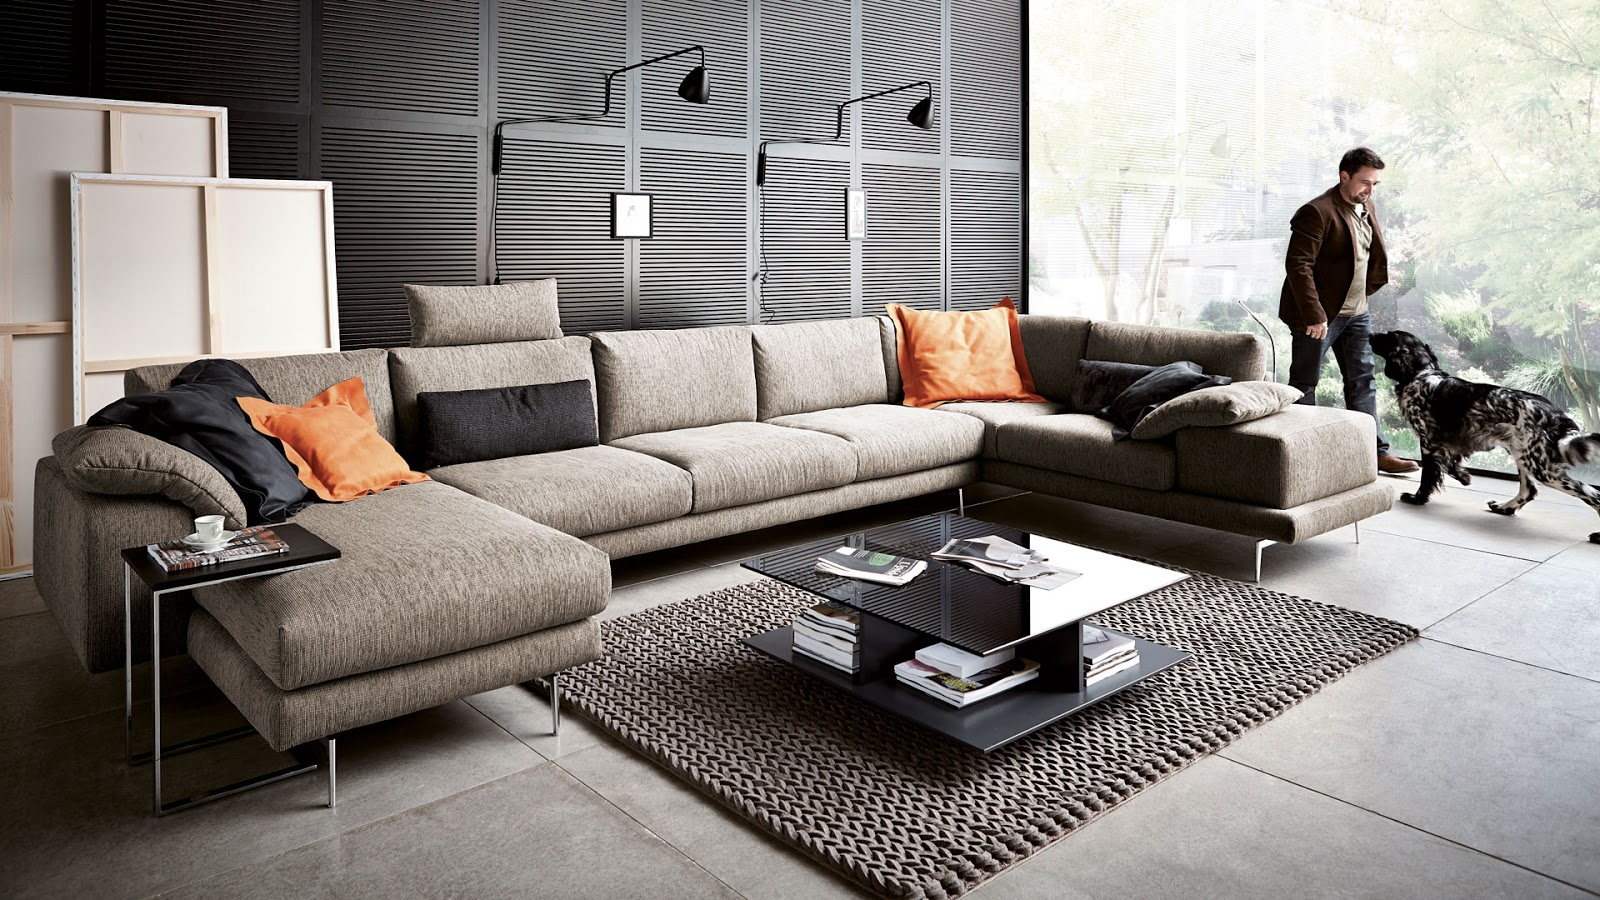 Couch Mit Relaxfunktion Koinor | Top Living - Design Meubelen | Lanaken